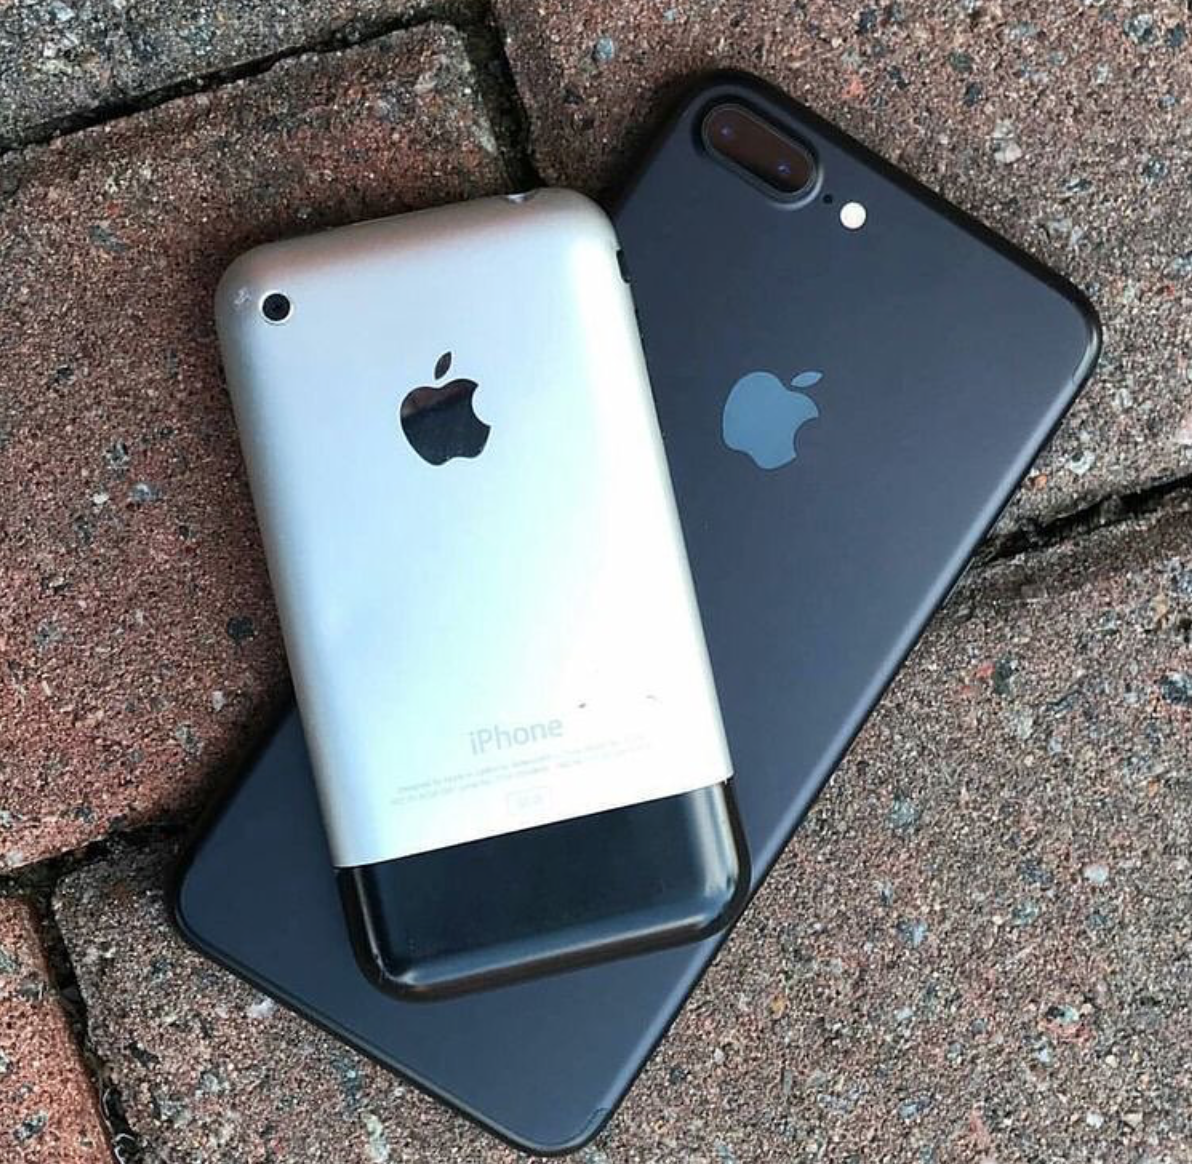 iPhone 2G iPhone 7 Plus